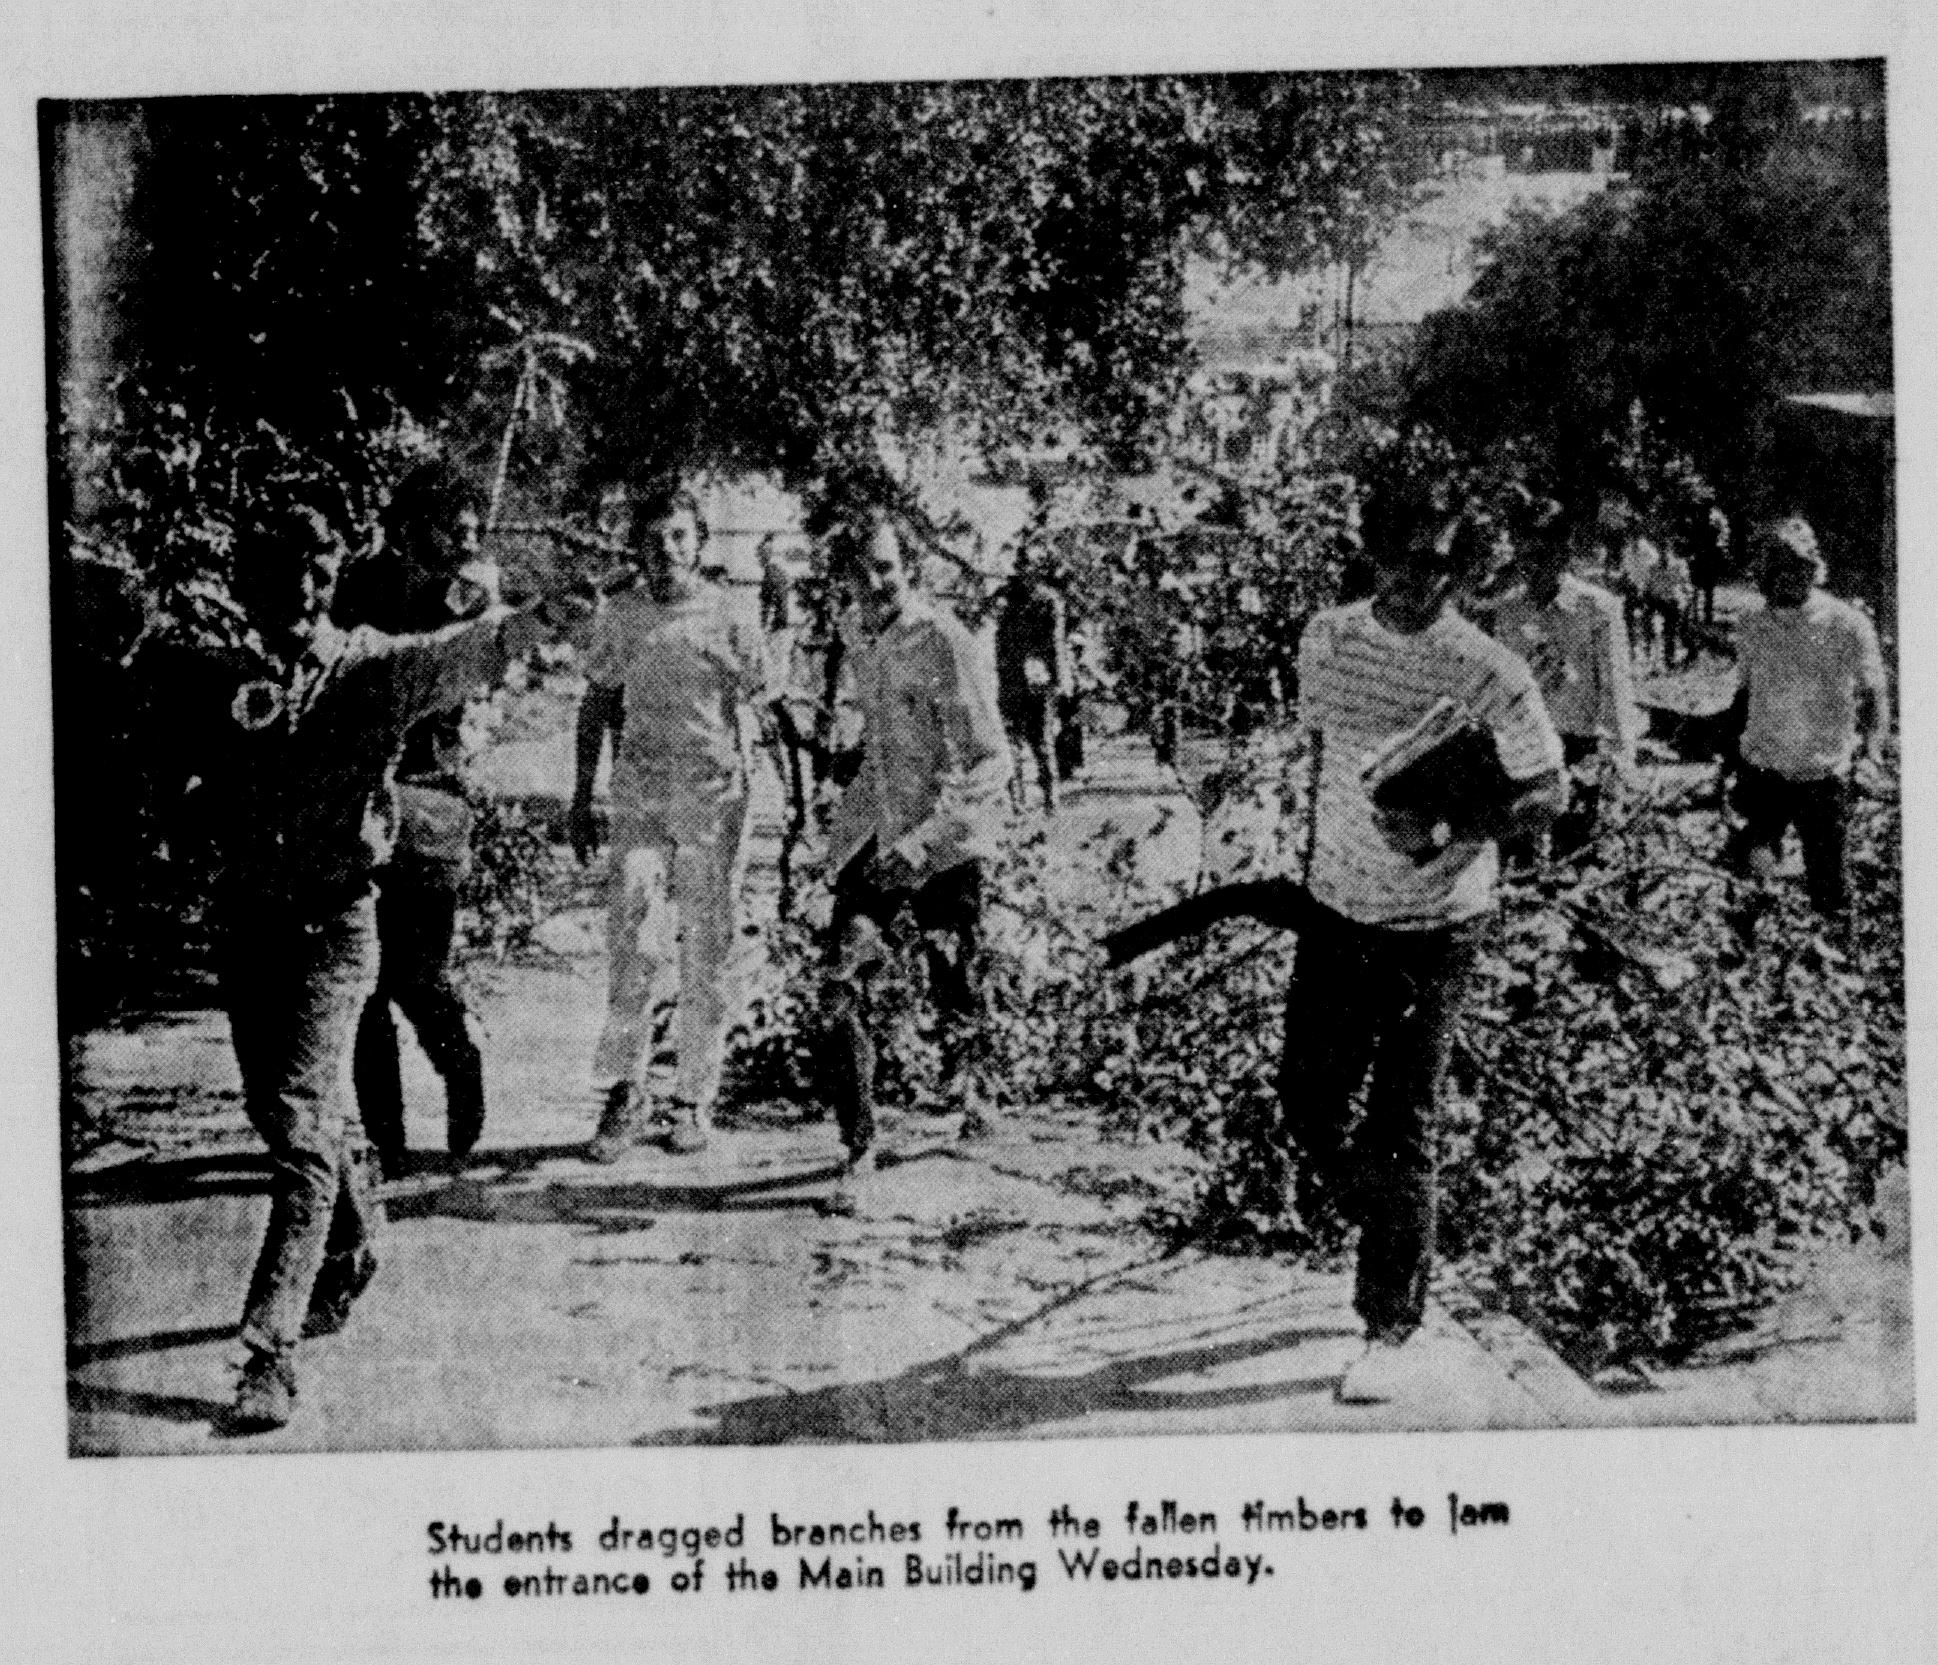 Photo taken by John Yates and published in the Daily Texan on October 26, 1969. This issue can be found in the linked database of Daily Texan archives.